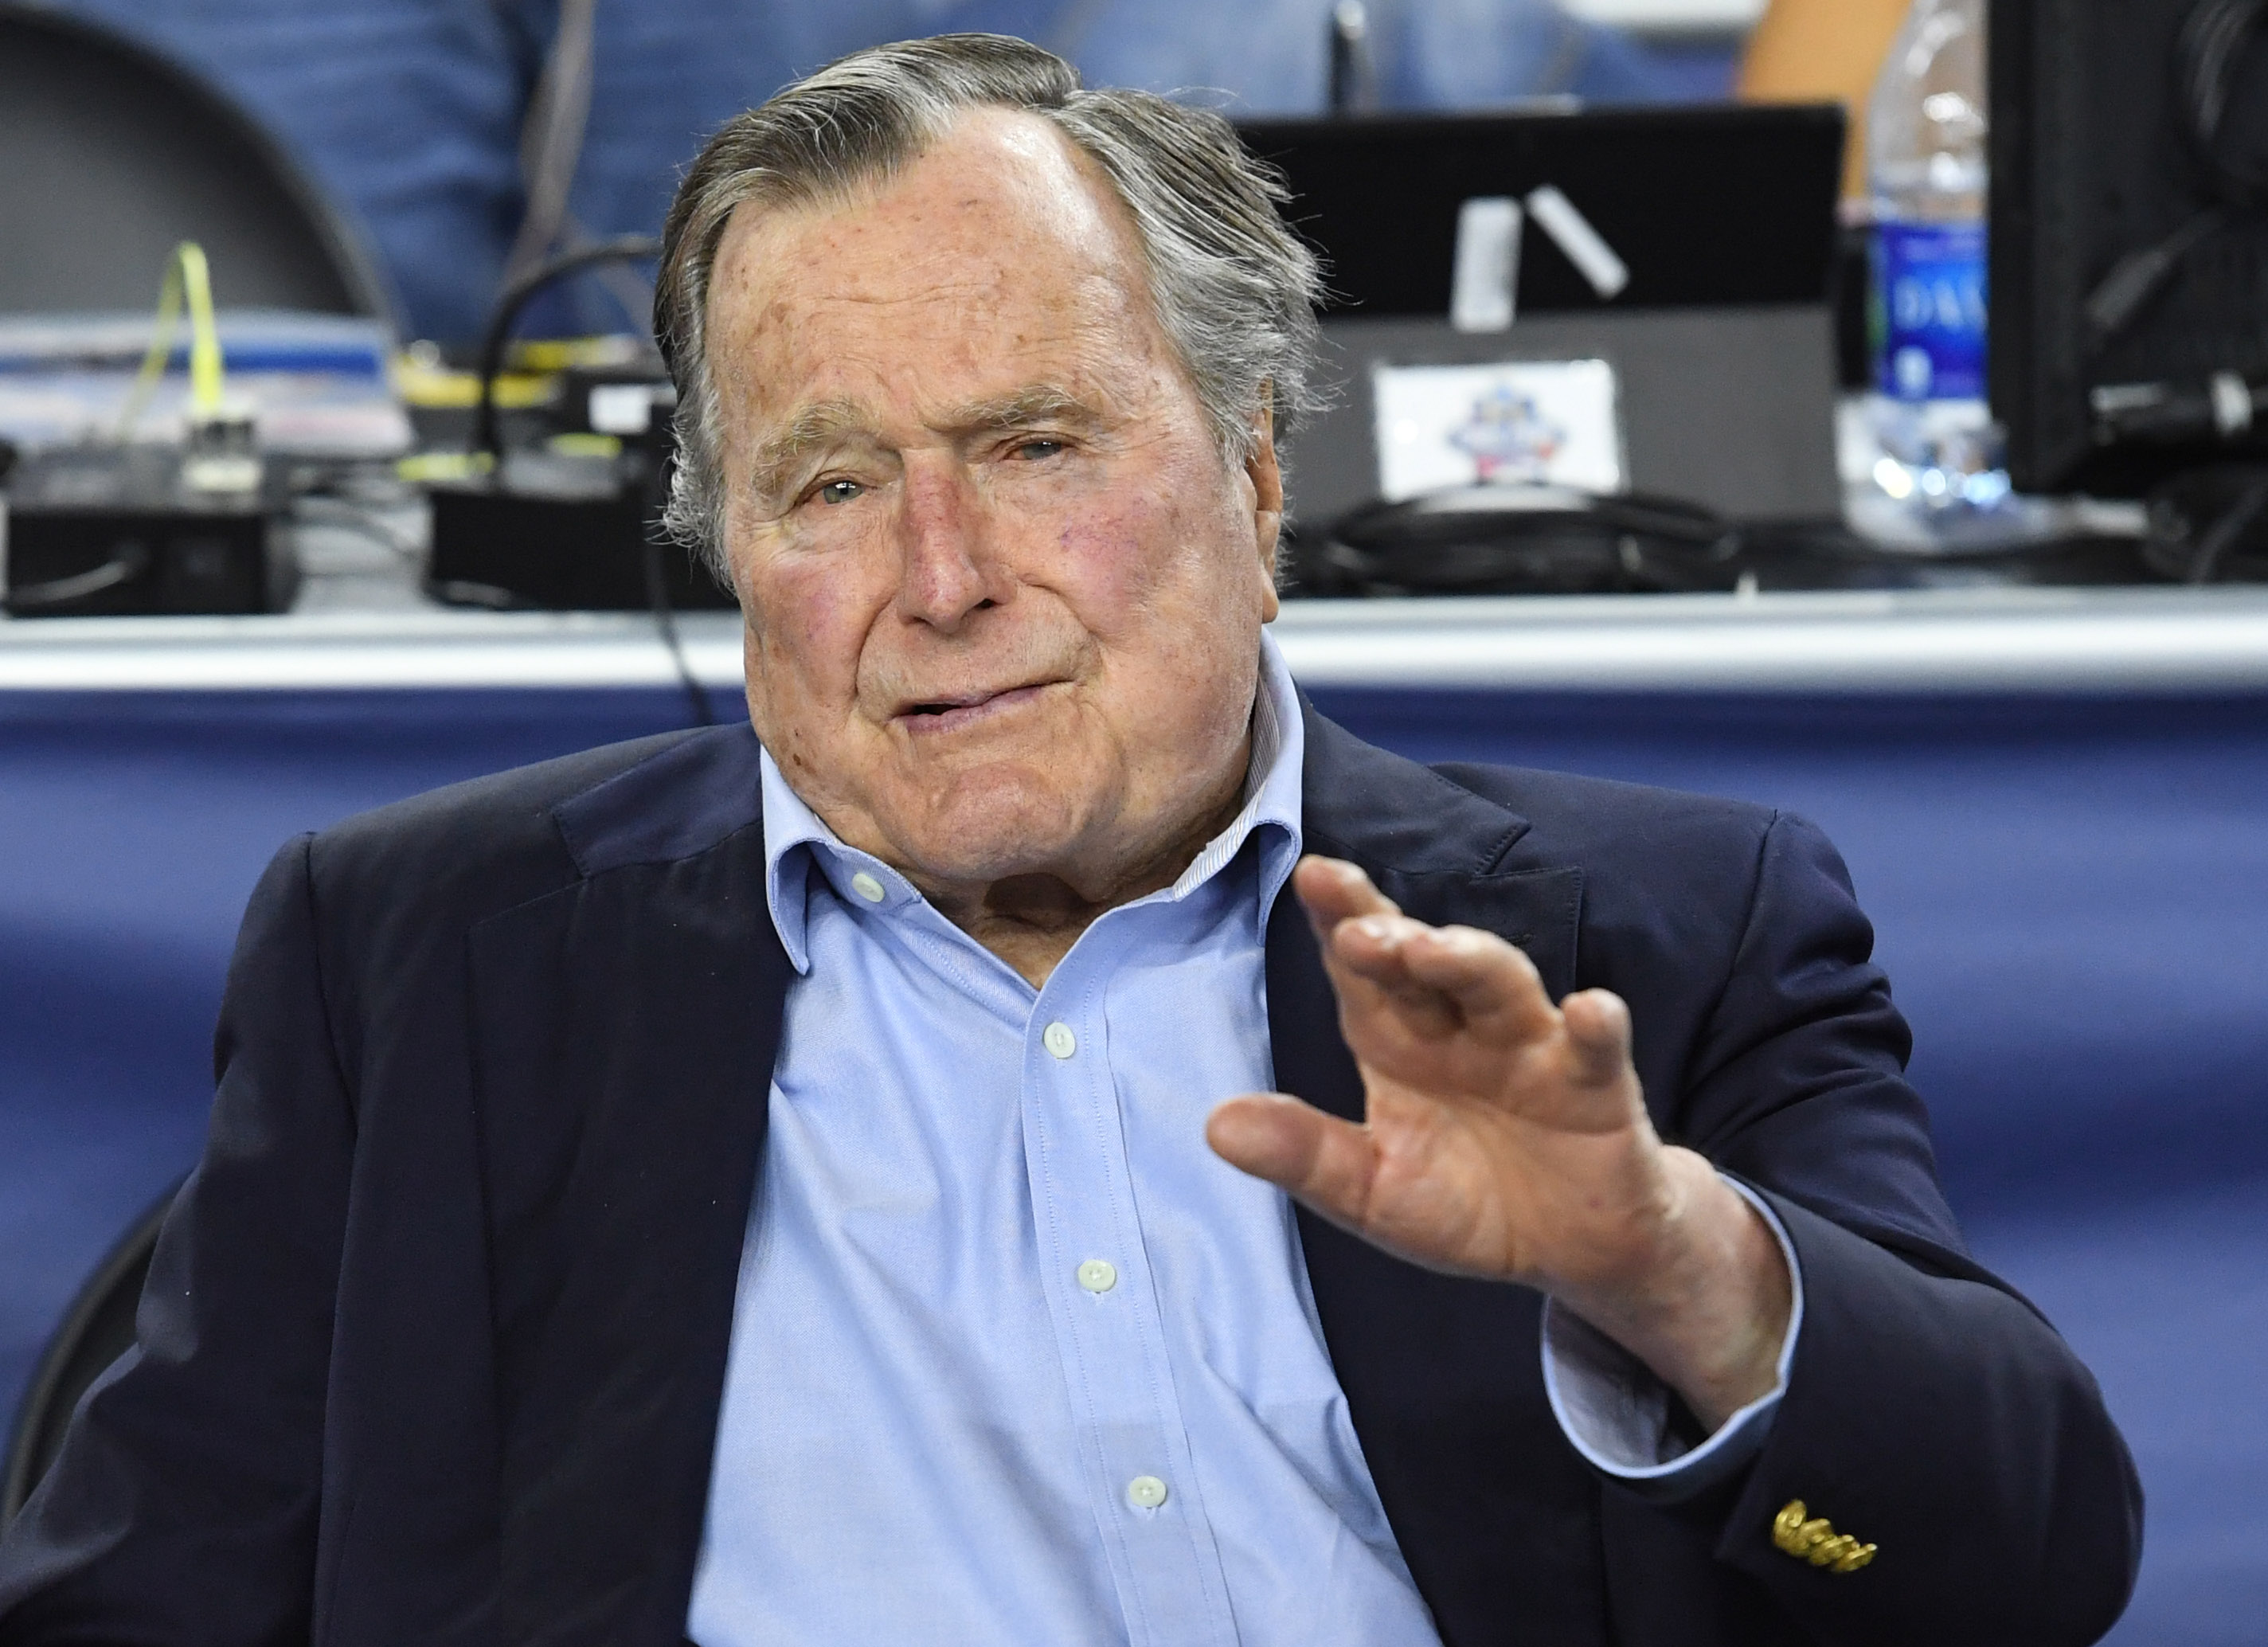 George H.W. Bush's Response To Groping Claims Is Pretty ...